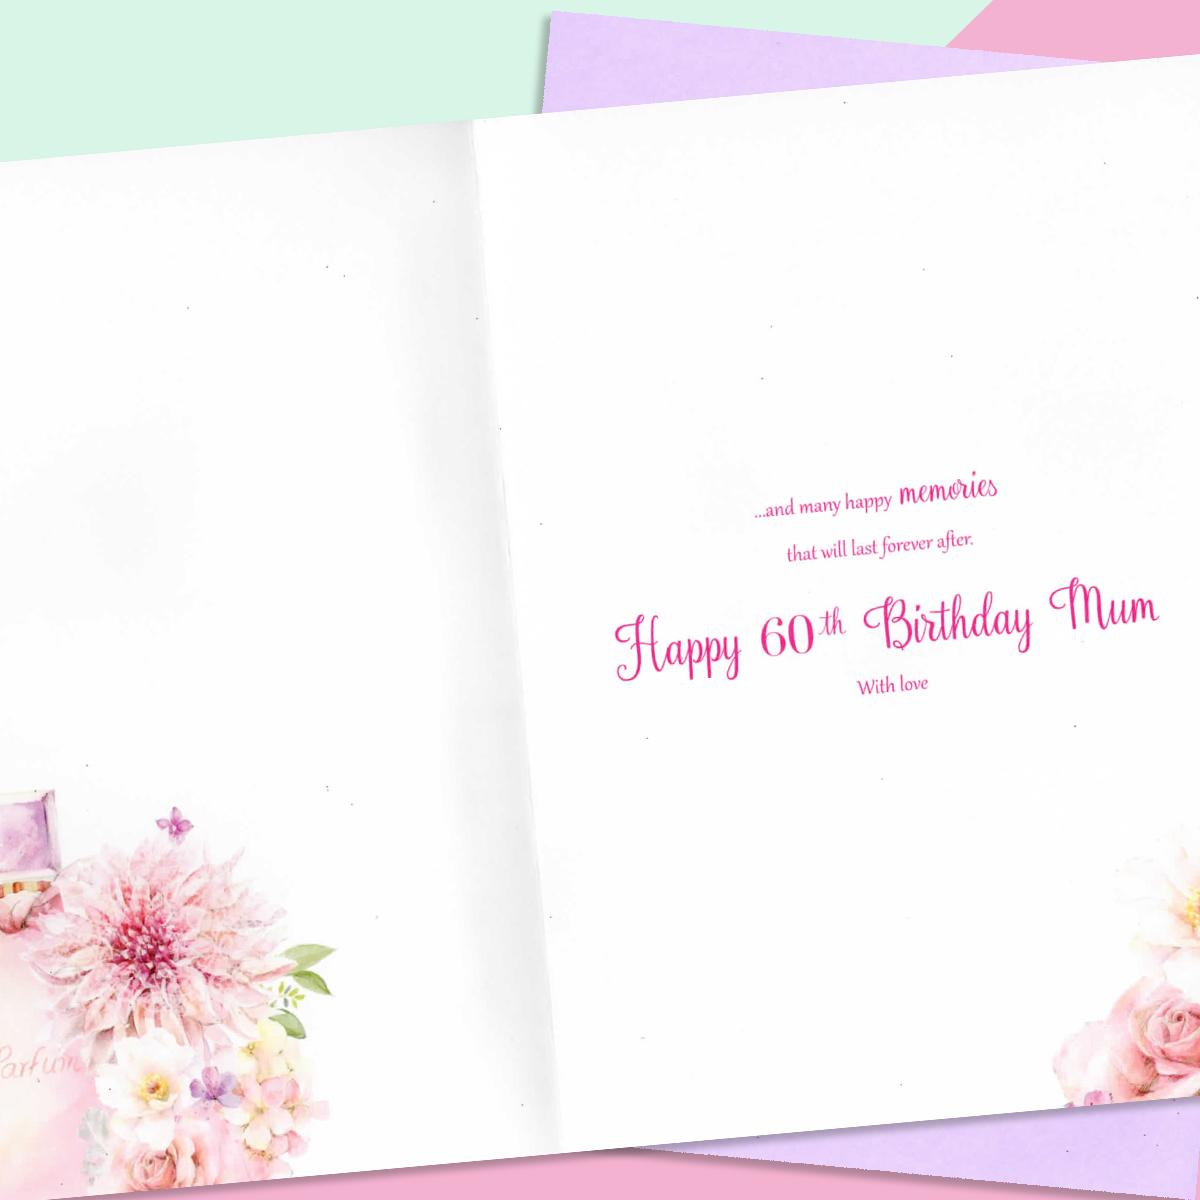 Inside Image Of 60th Mum Card Showing Layout And Printed Text